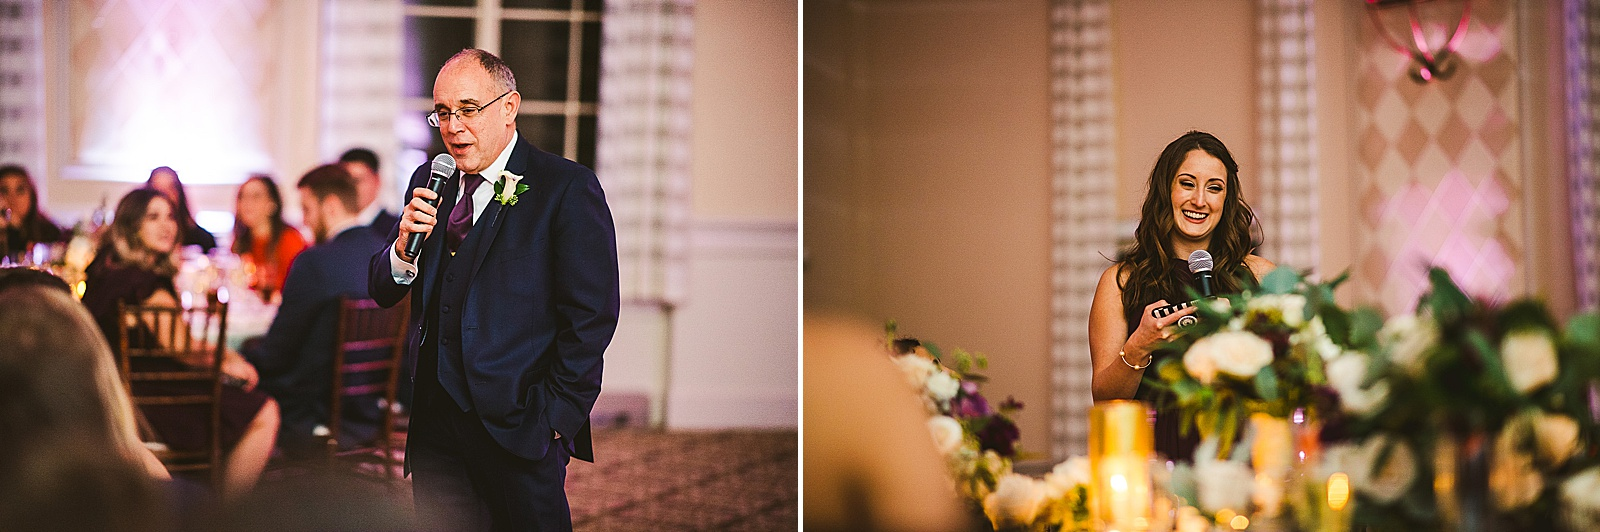 47 best speech photography for weddings - The Glen Club Wedding Photos // Katie + Nick